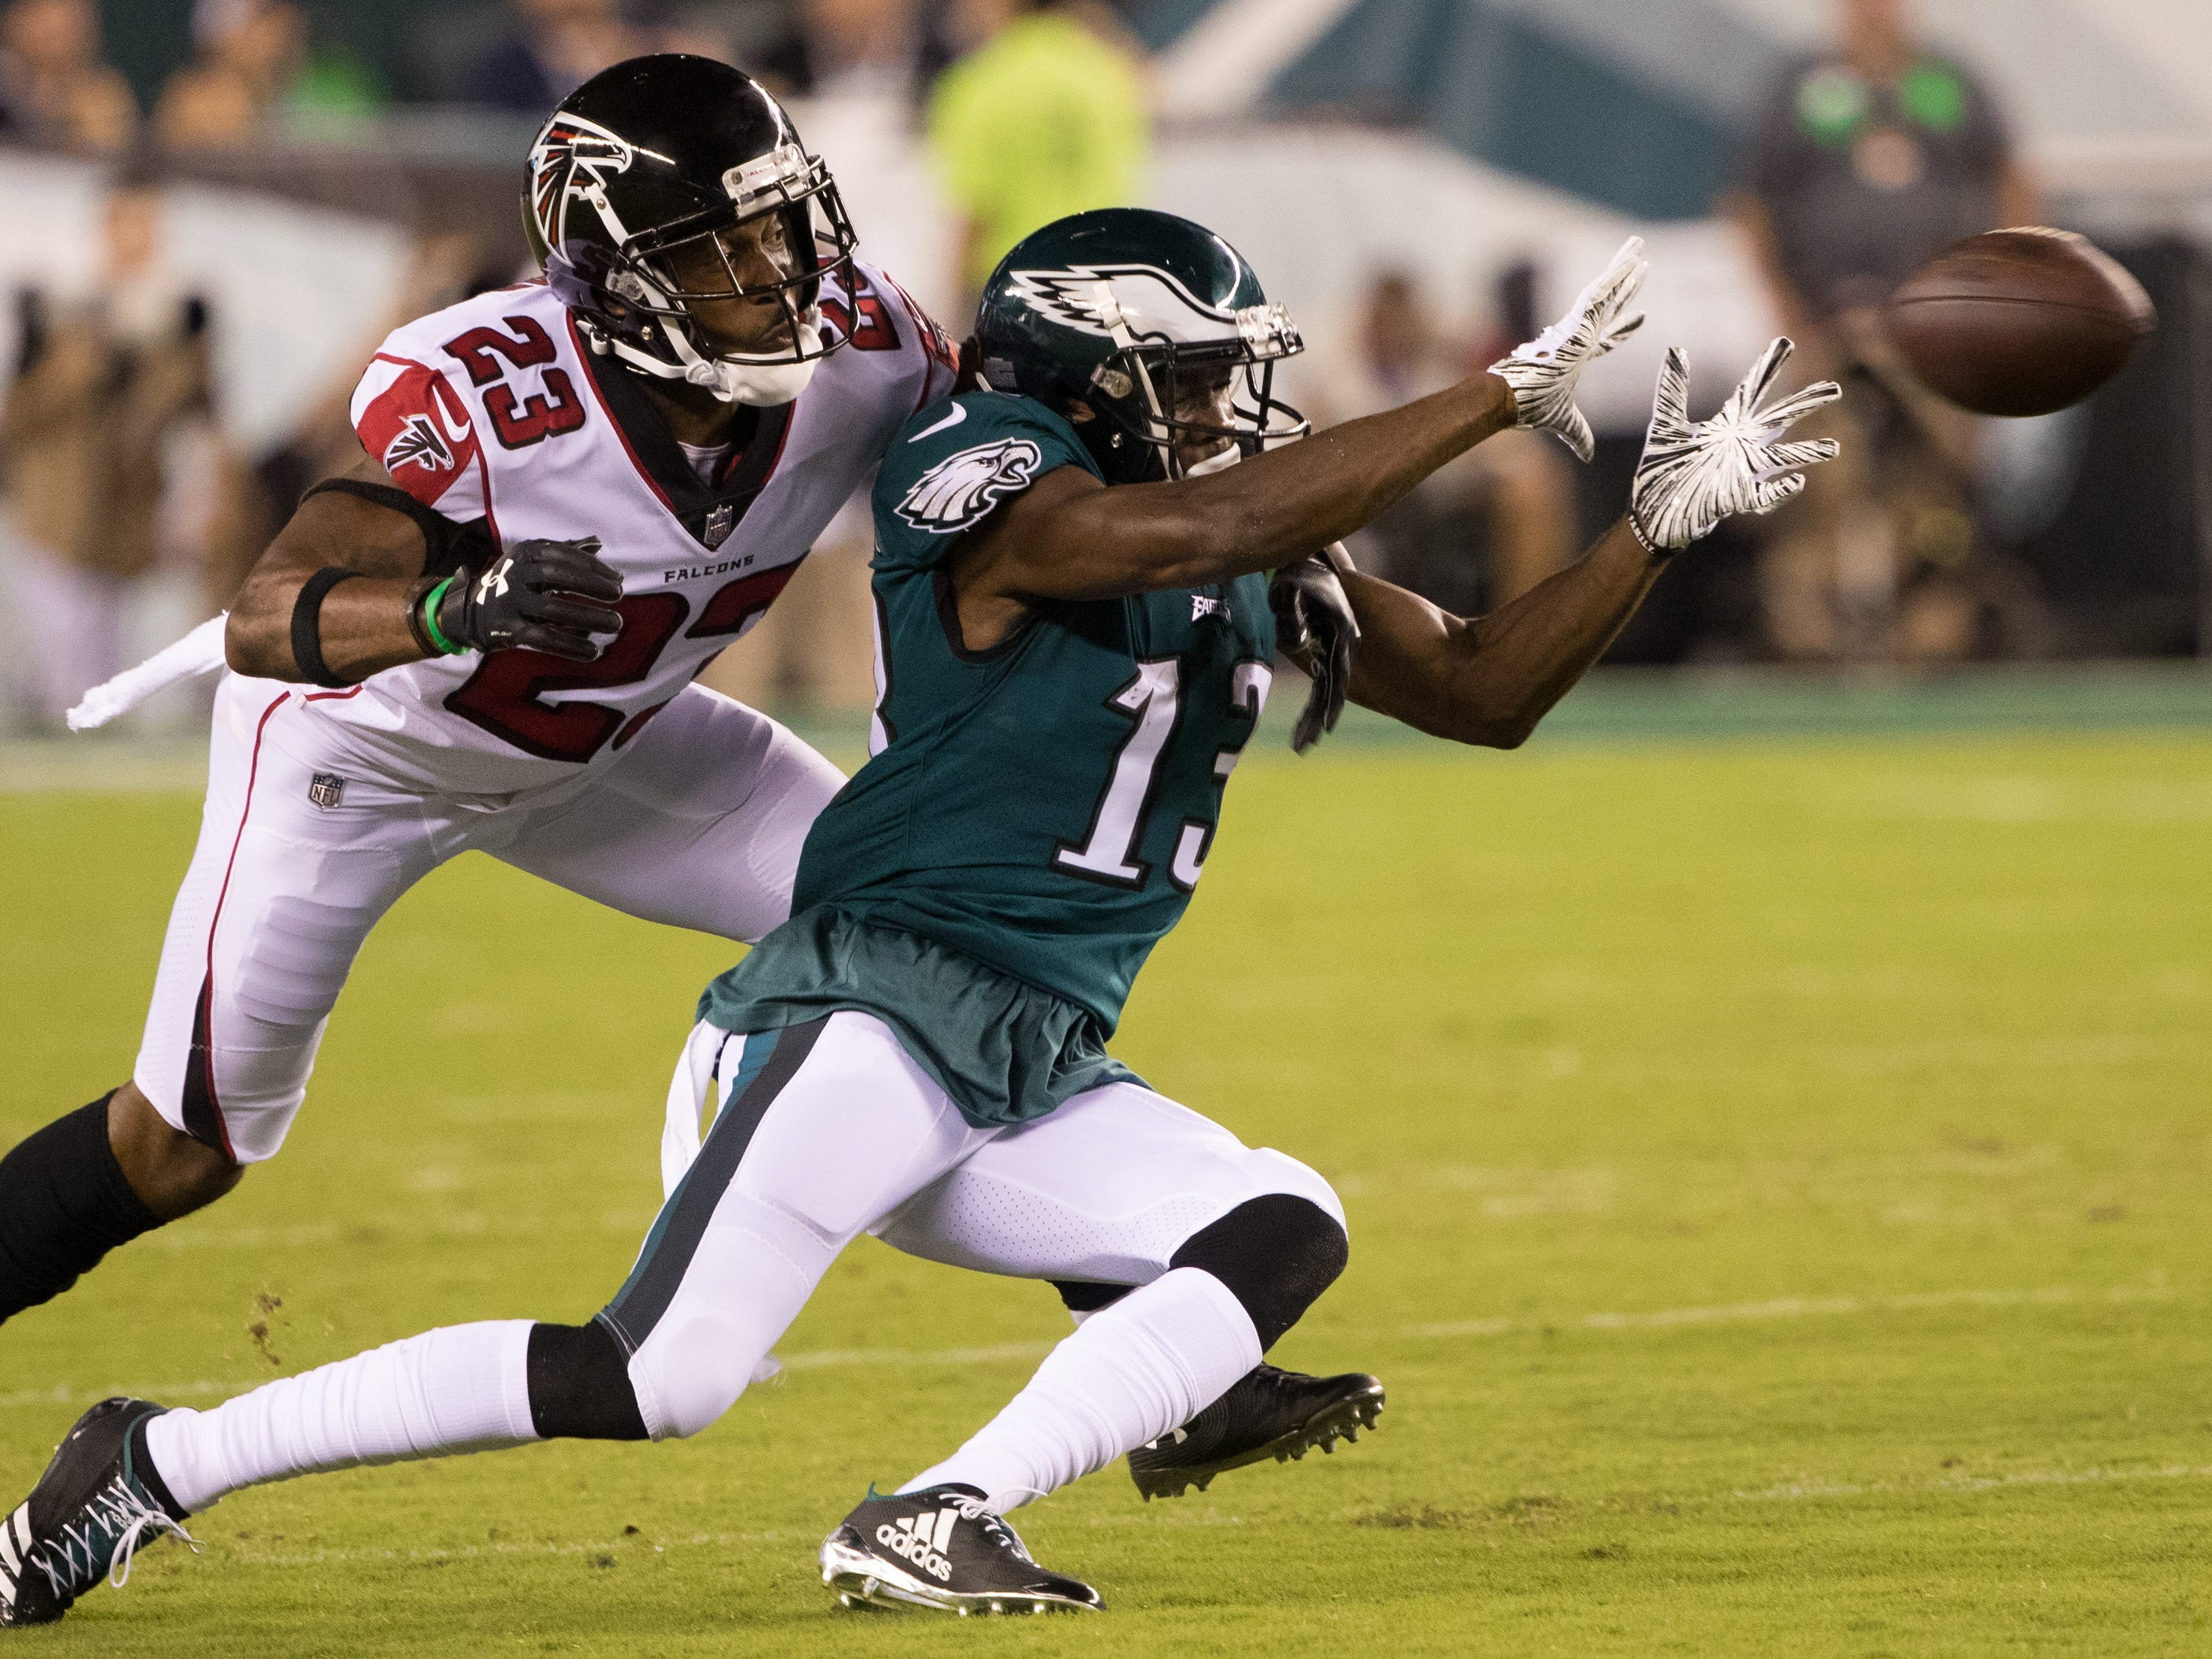 Philadelphia Eagles wide receiver Nelson Agholor makes a catch in front of Atlanta Falcons defensive back Robert Alford during the second quarter at Lincoln Financial Field.